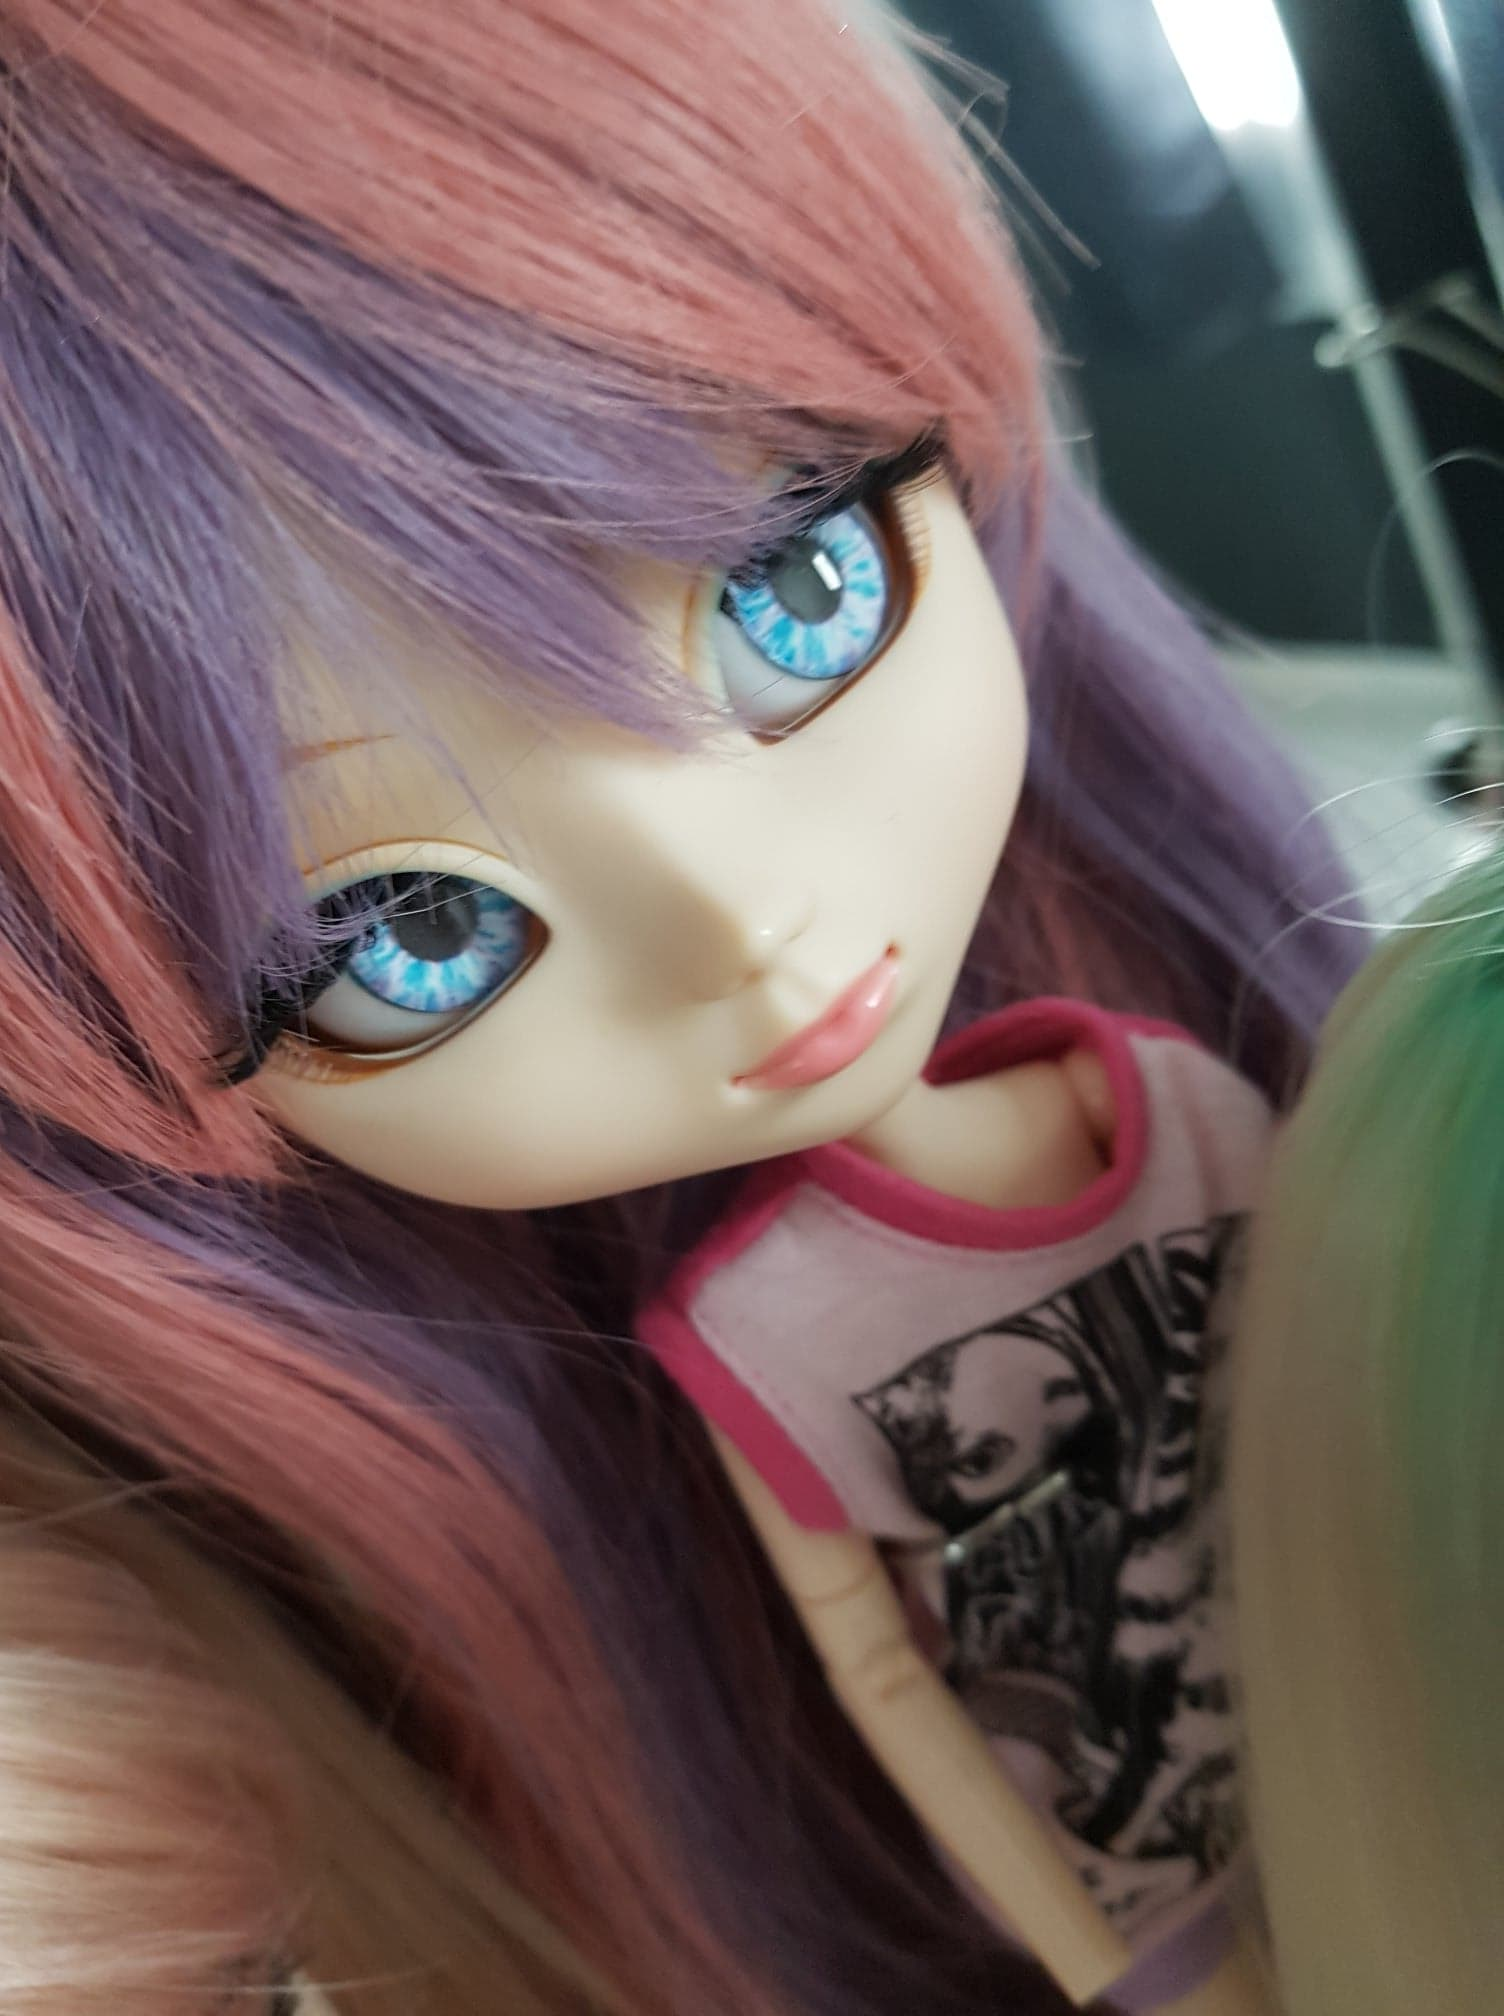 [VENTES] - Pullip Lunatic Queen 181206013520471298